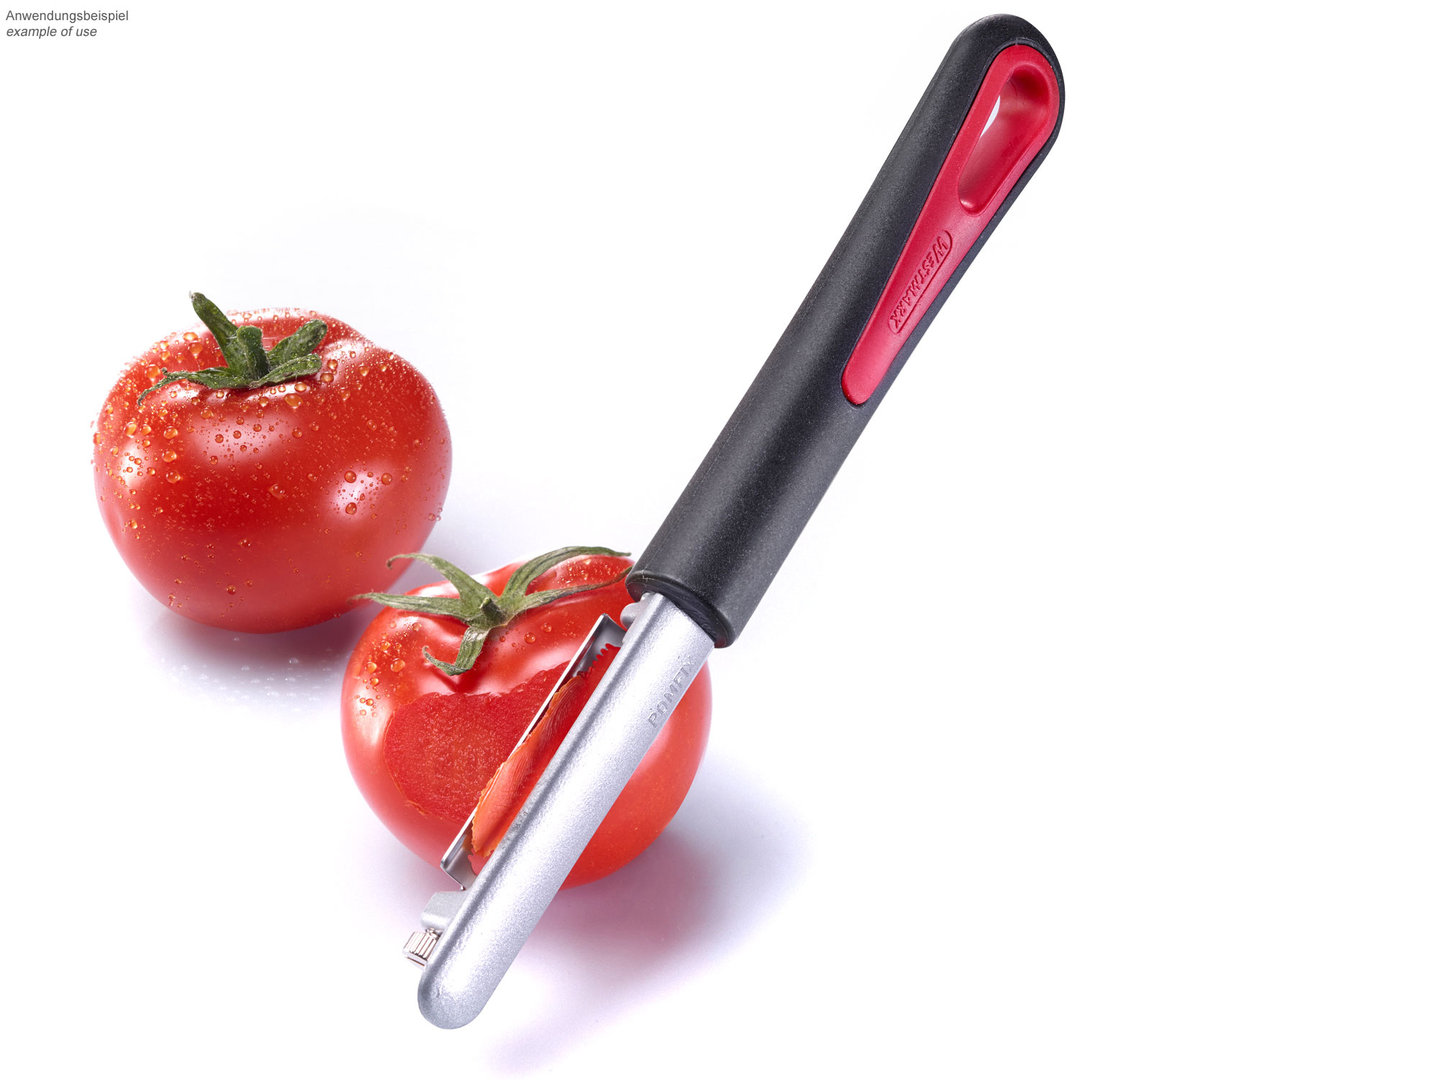 WESTMARK TomFix tomato peeler, also suitbale for left-handers